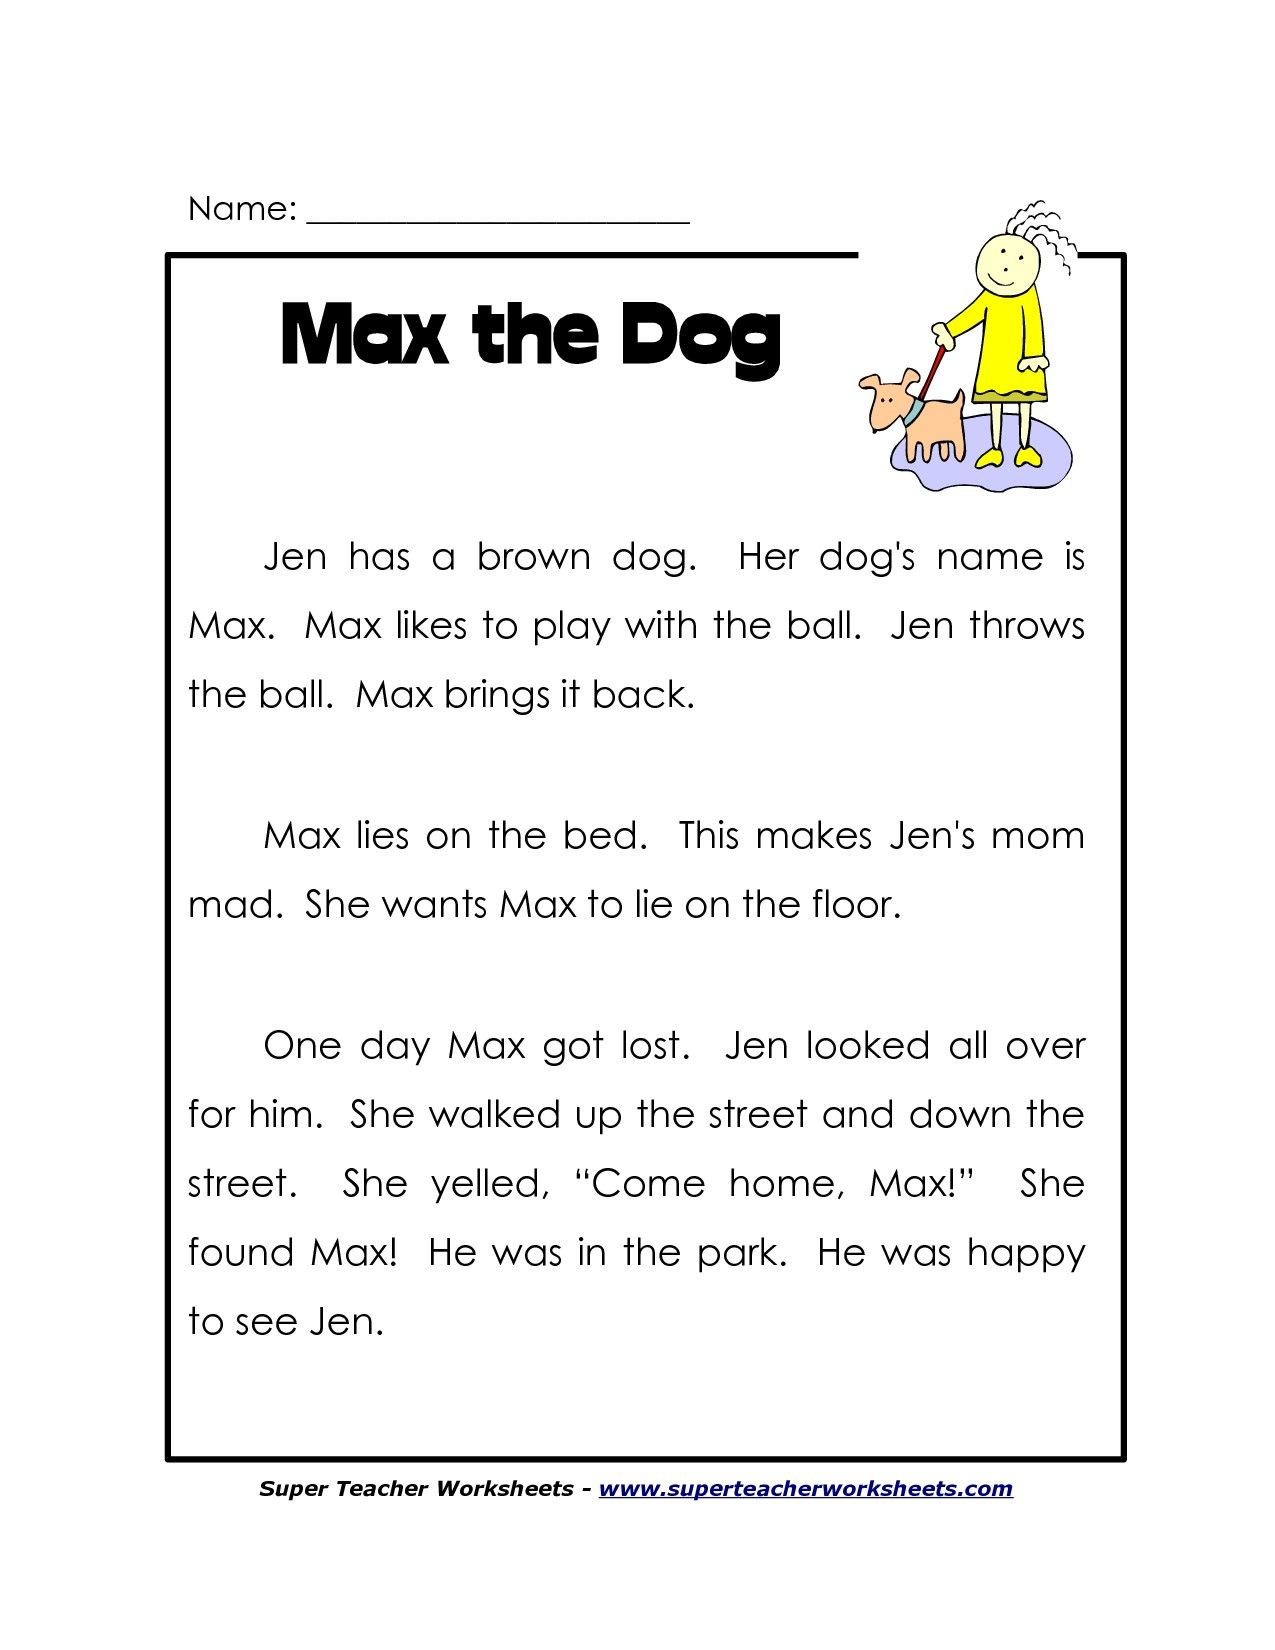 Worksheets Second Grade Reading Worksheets Free 1st grade reading worksheets free lots more on superteacherworksheets com